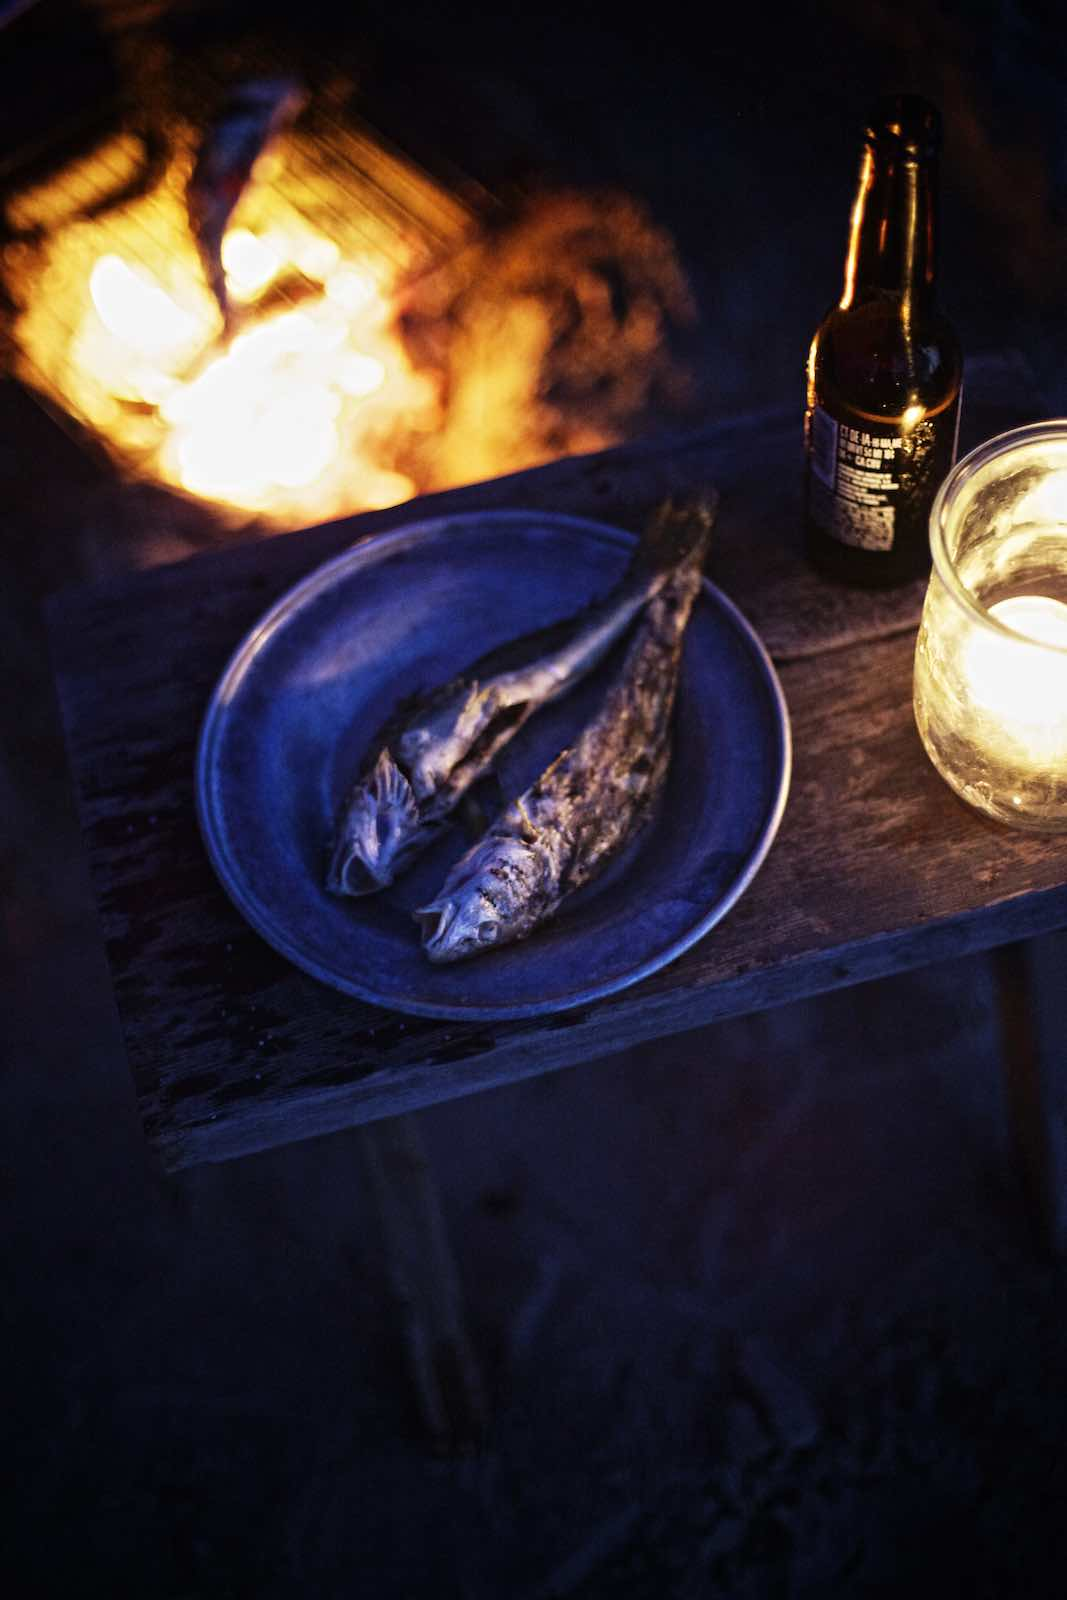 Jody Horton Photography - Grilled fish on a silver plate.